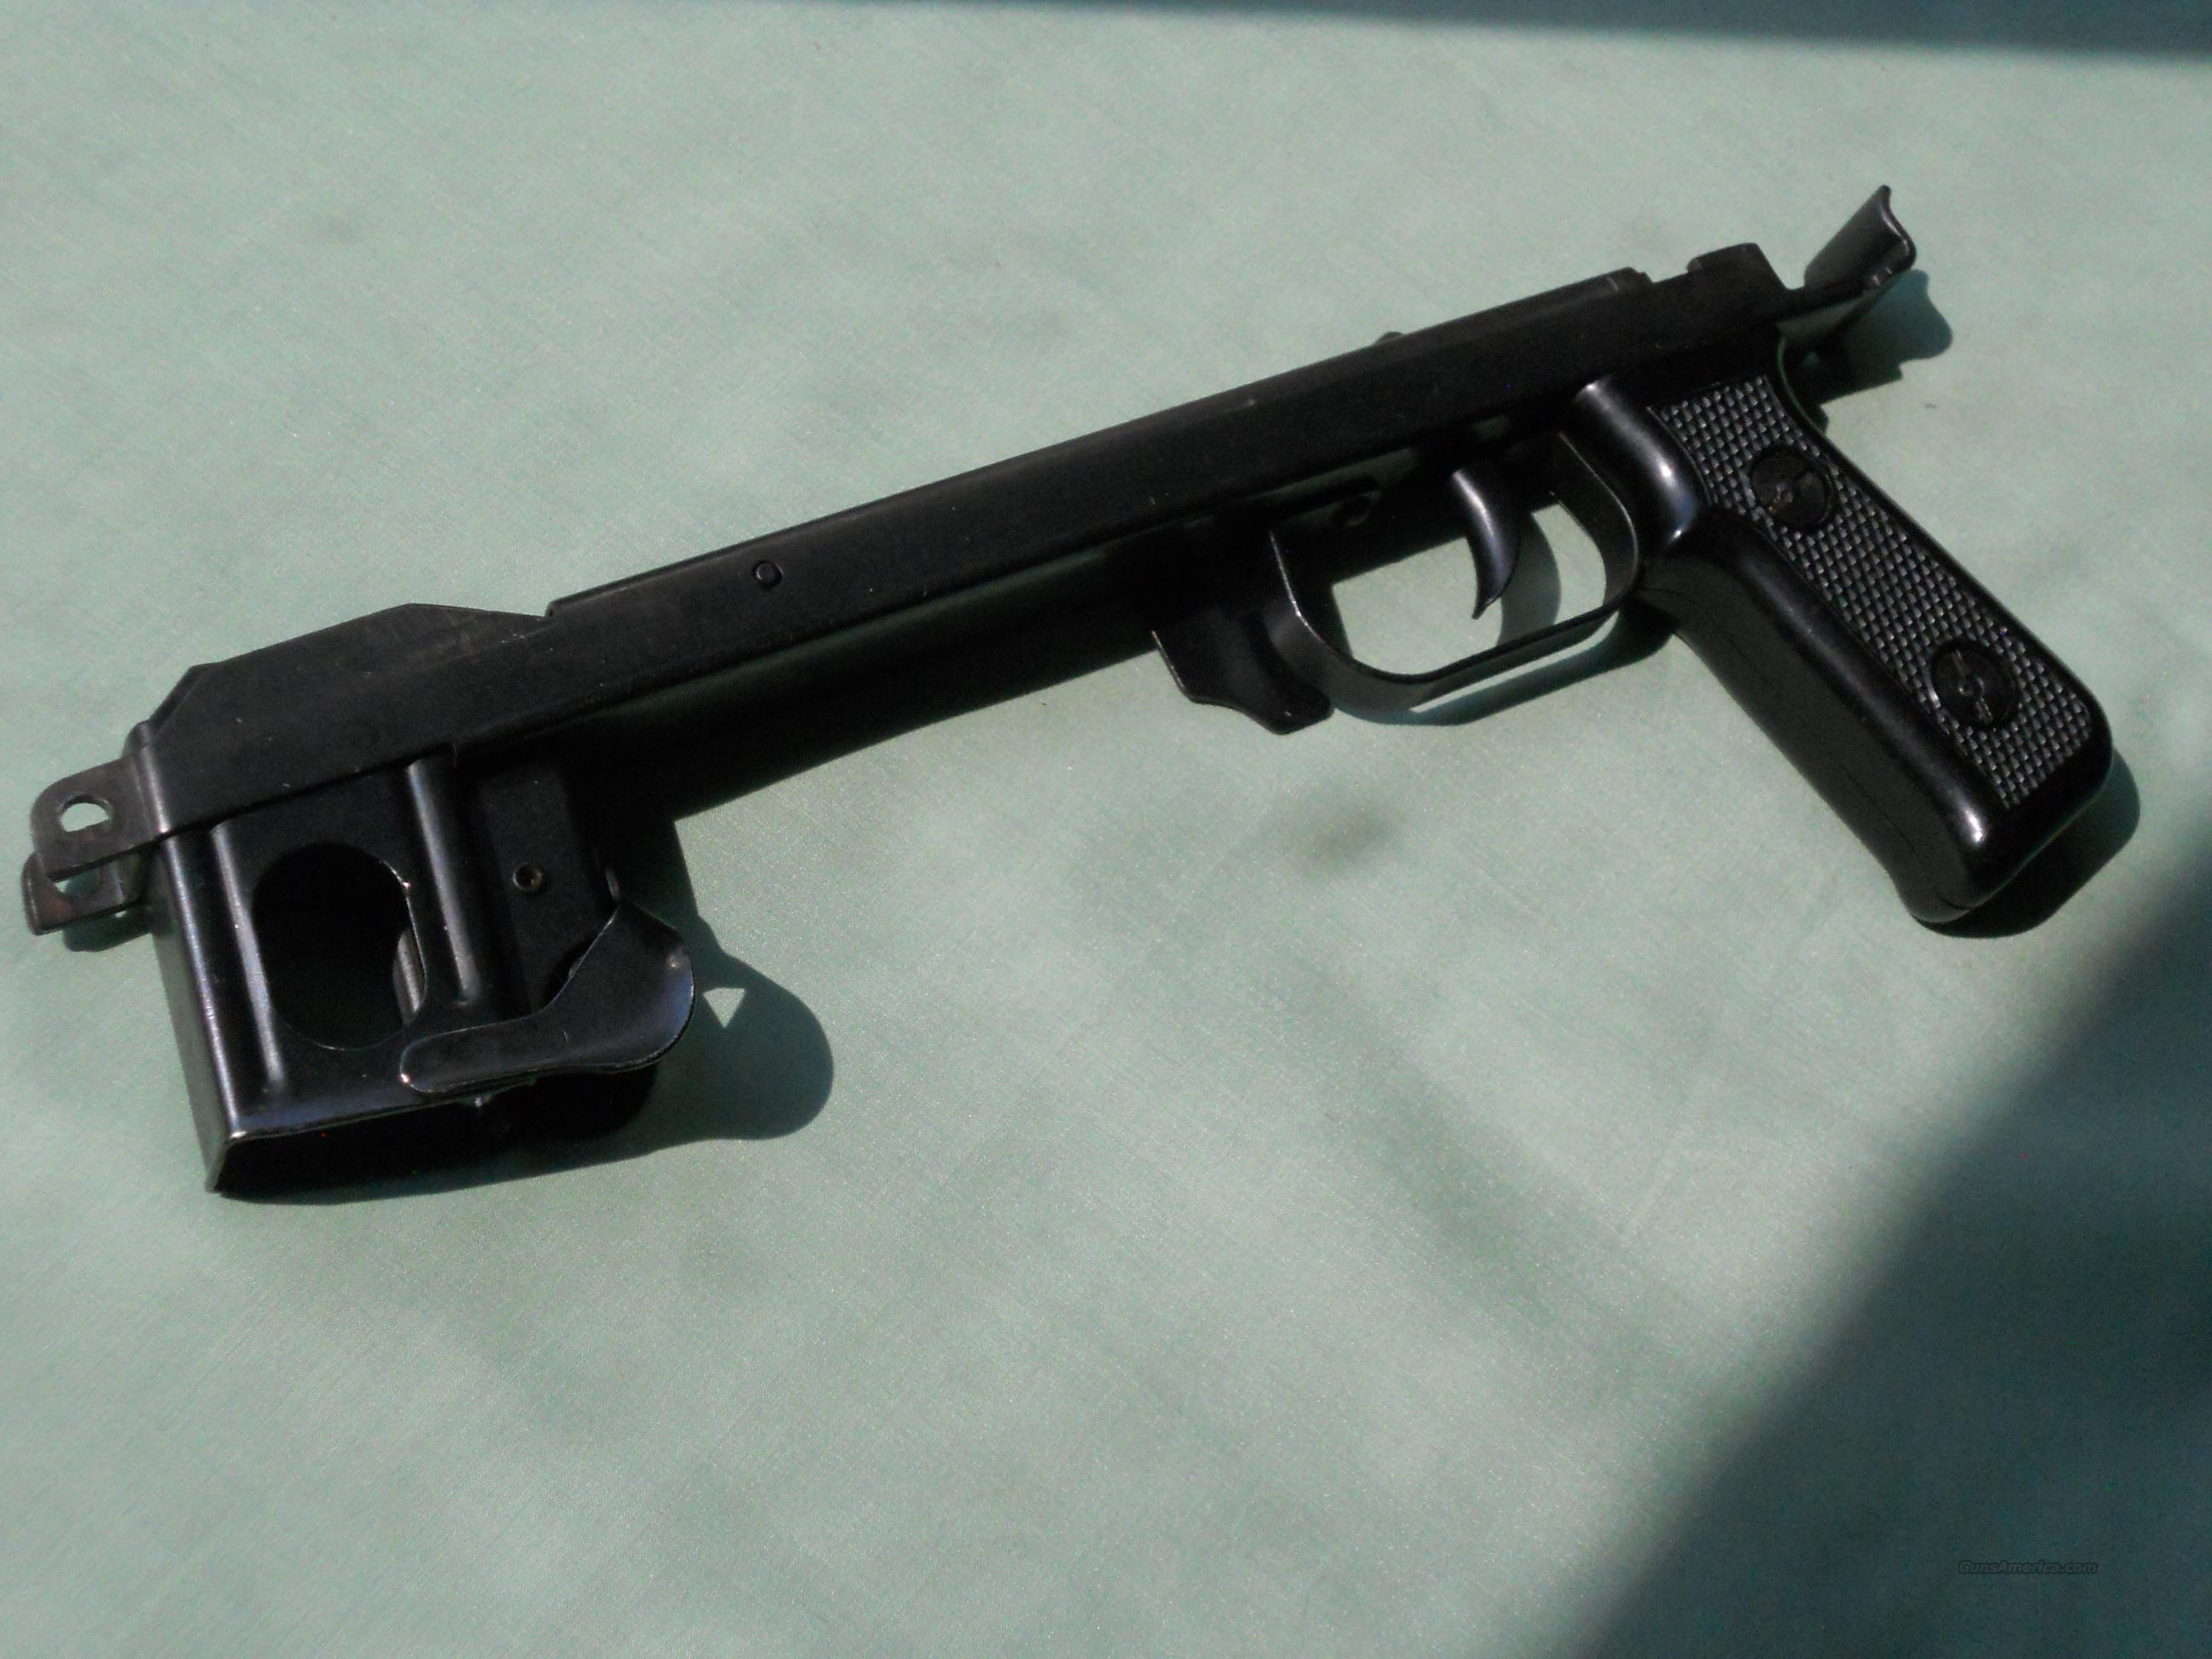 PPSH-43 LOWER RECEIVER ASSEMBLY   Non-Guns > Magazines & Clips > Subgun Magazines > Clips > Other